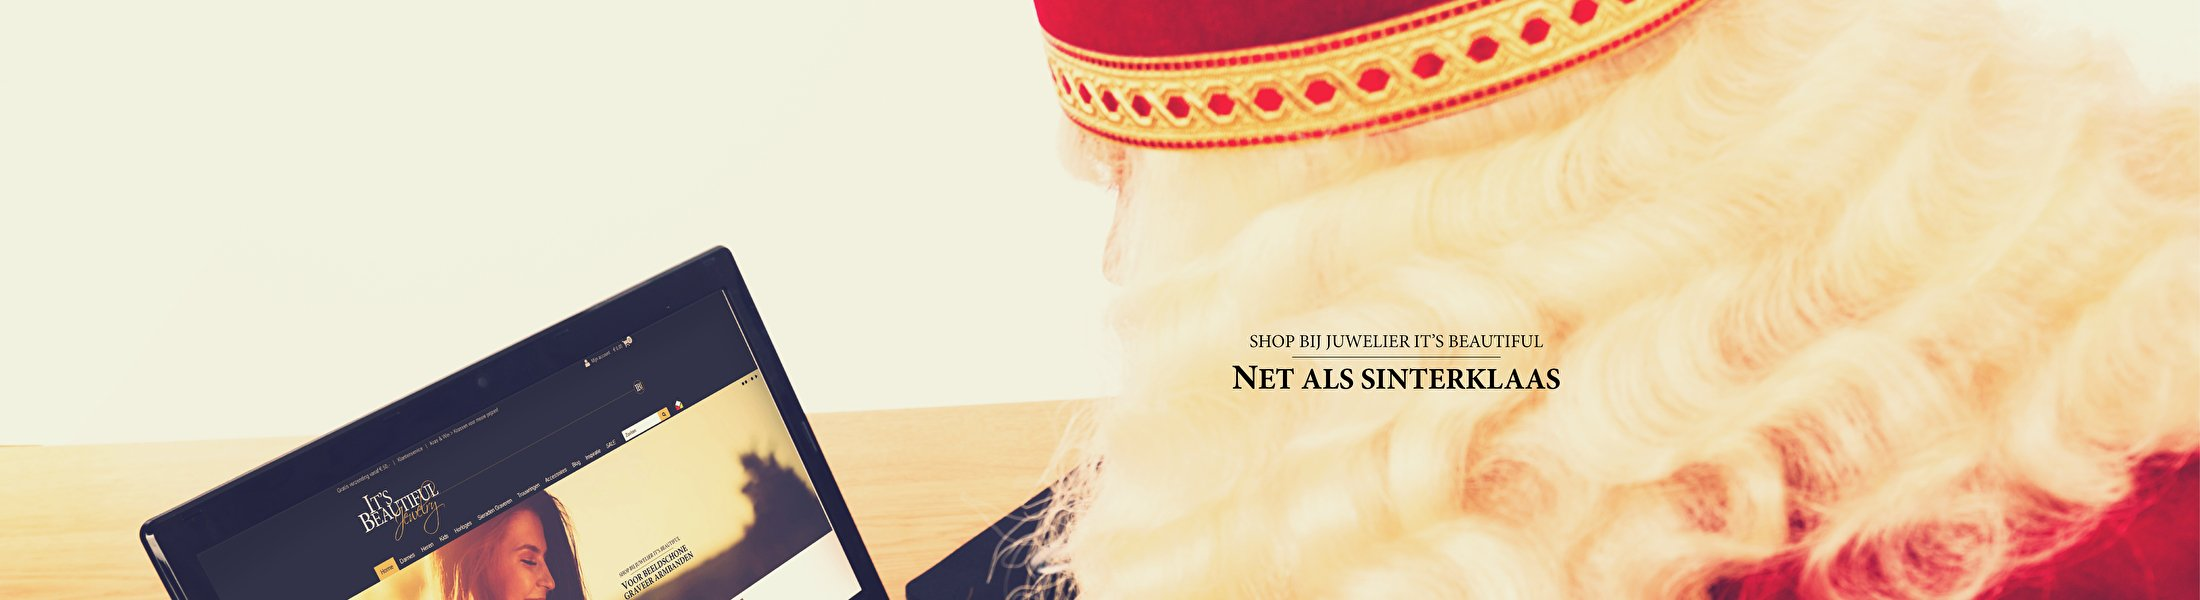 Shop bij juwelier It's Beautiful Net als Sinterklaas